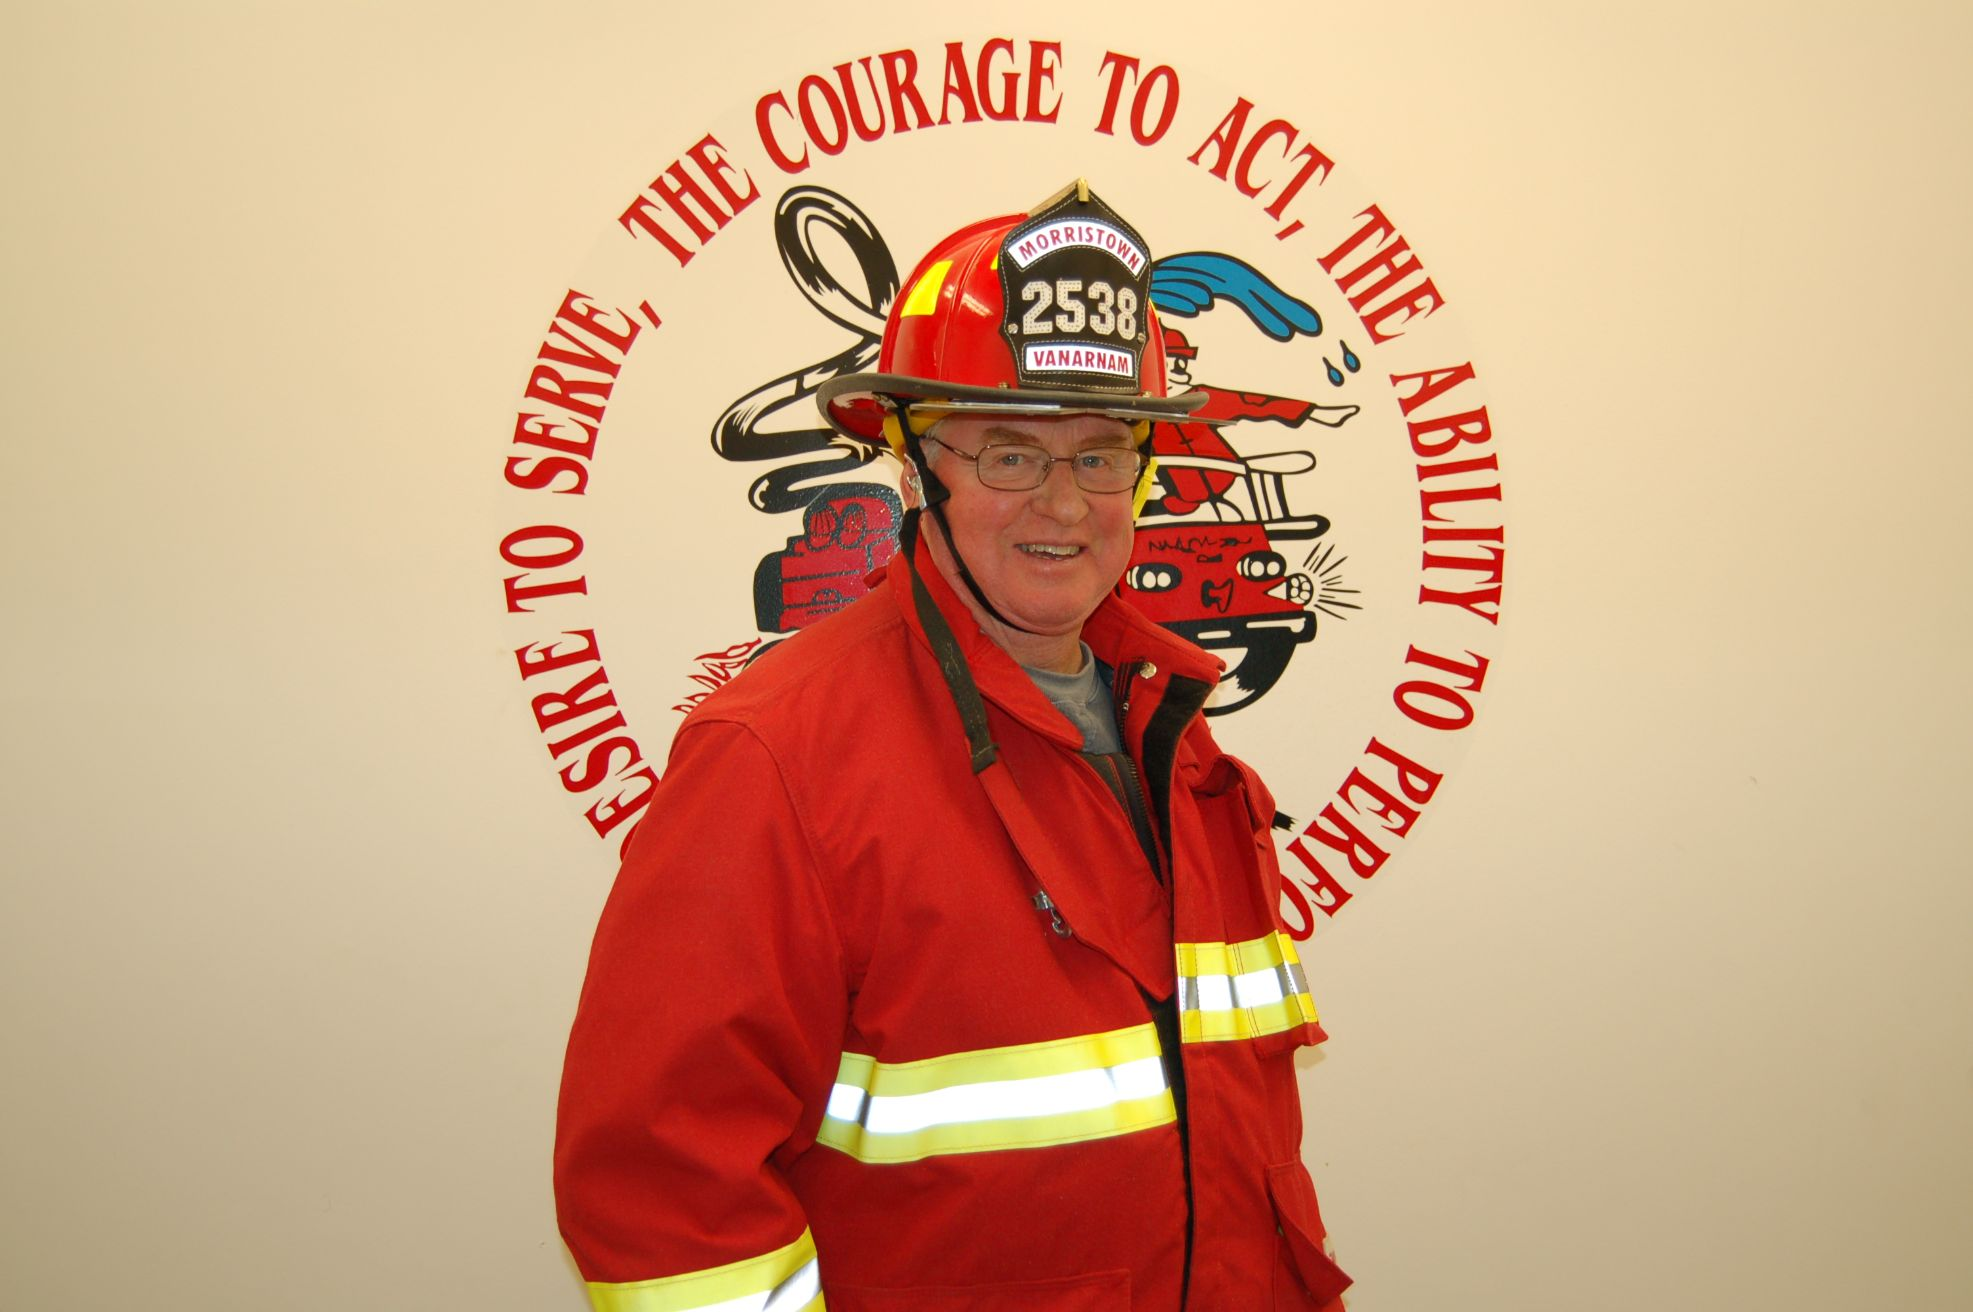 Fire Fighter Bruce VanArnam